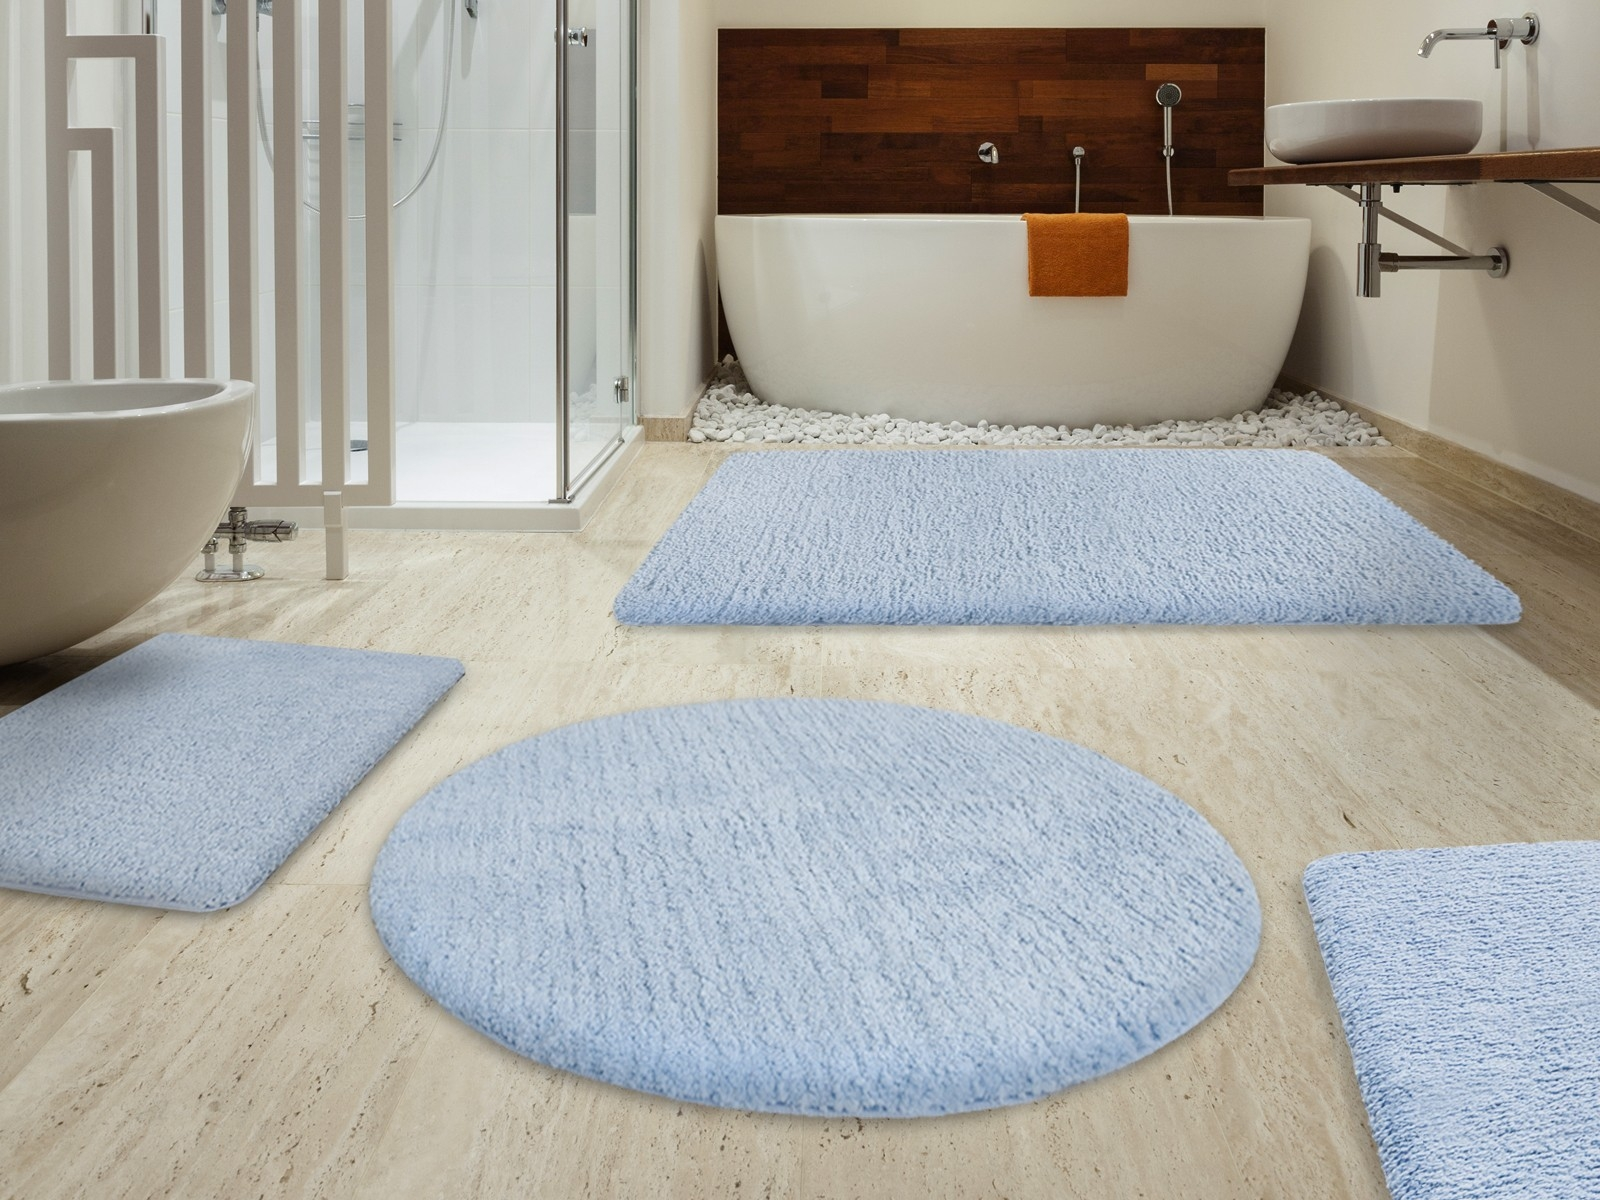 Bathroom Bath Mat